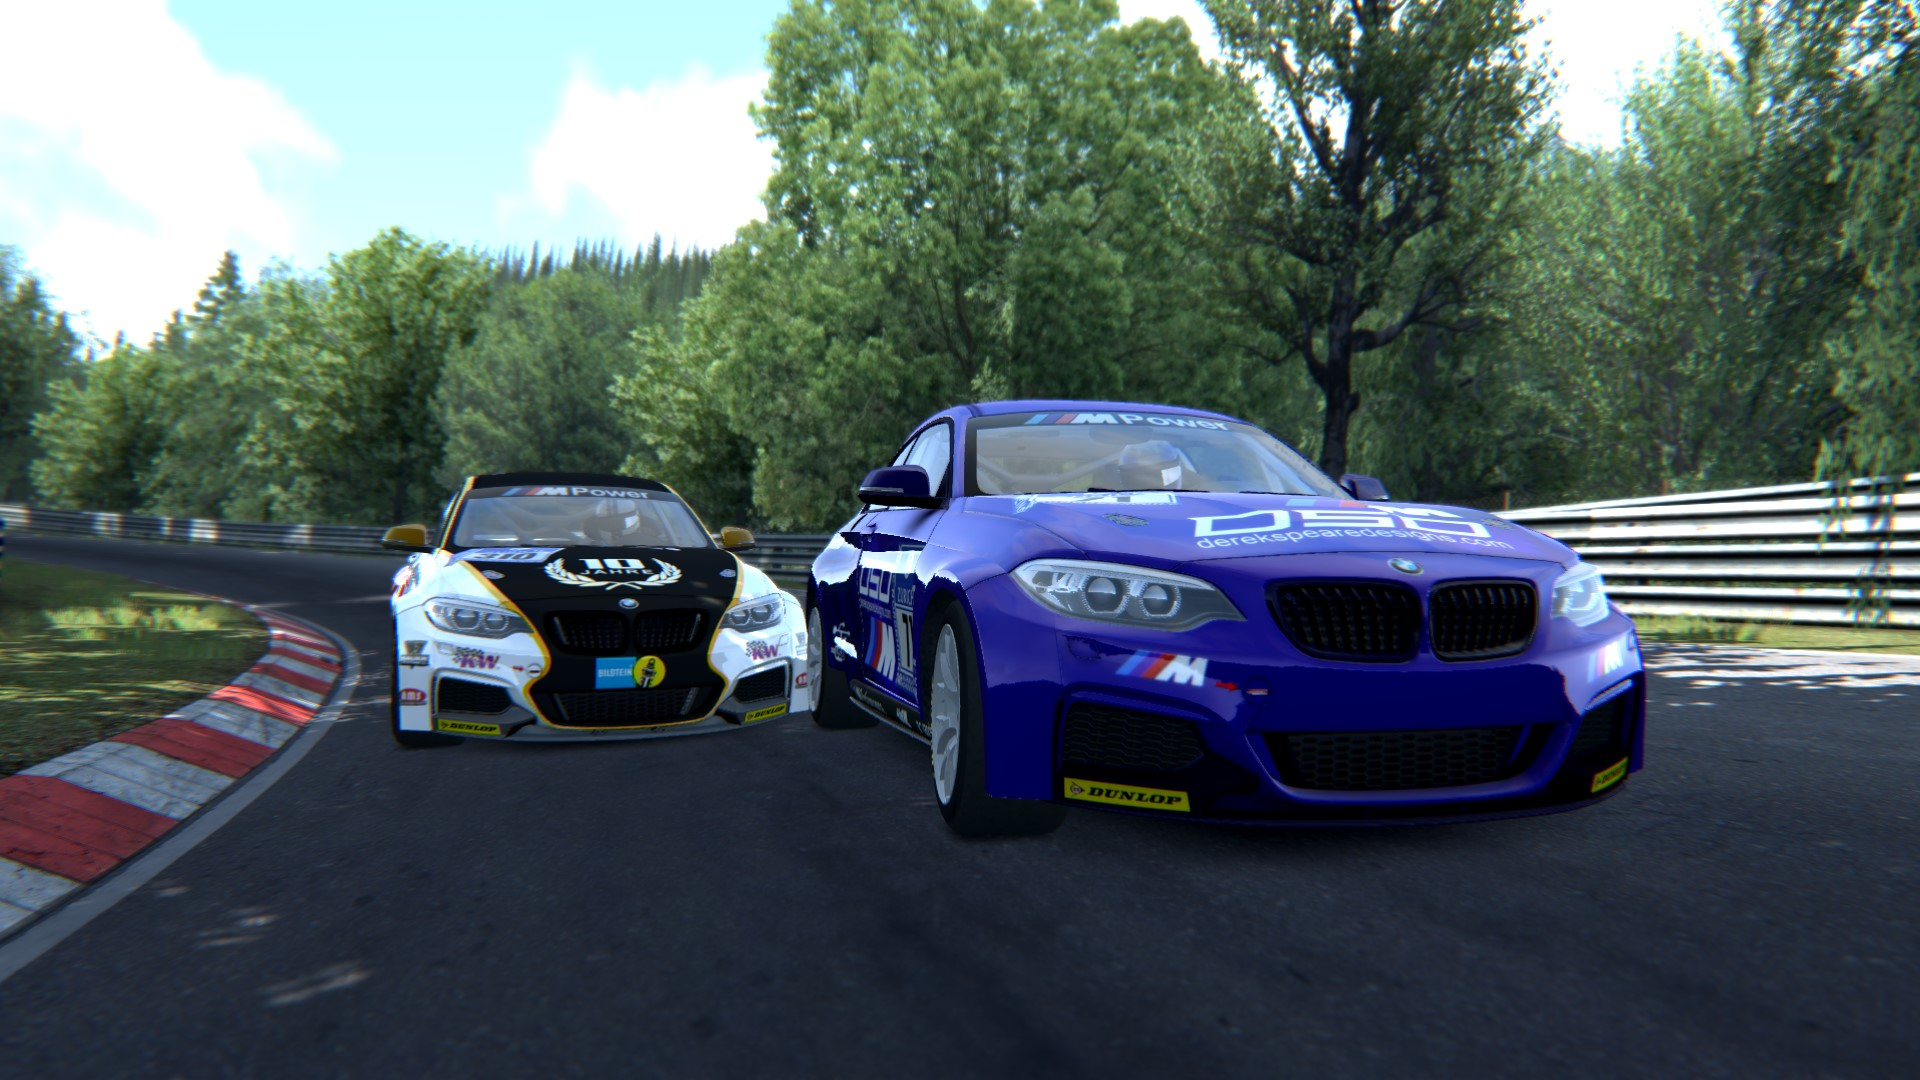 BMW M235i Racing @ Nordschleife - Wednesday 25 March 2015